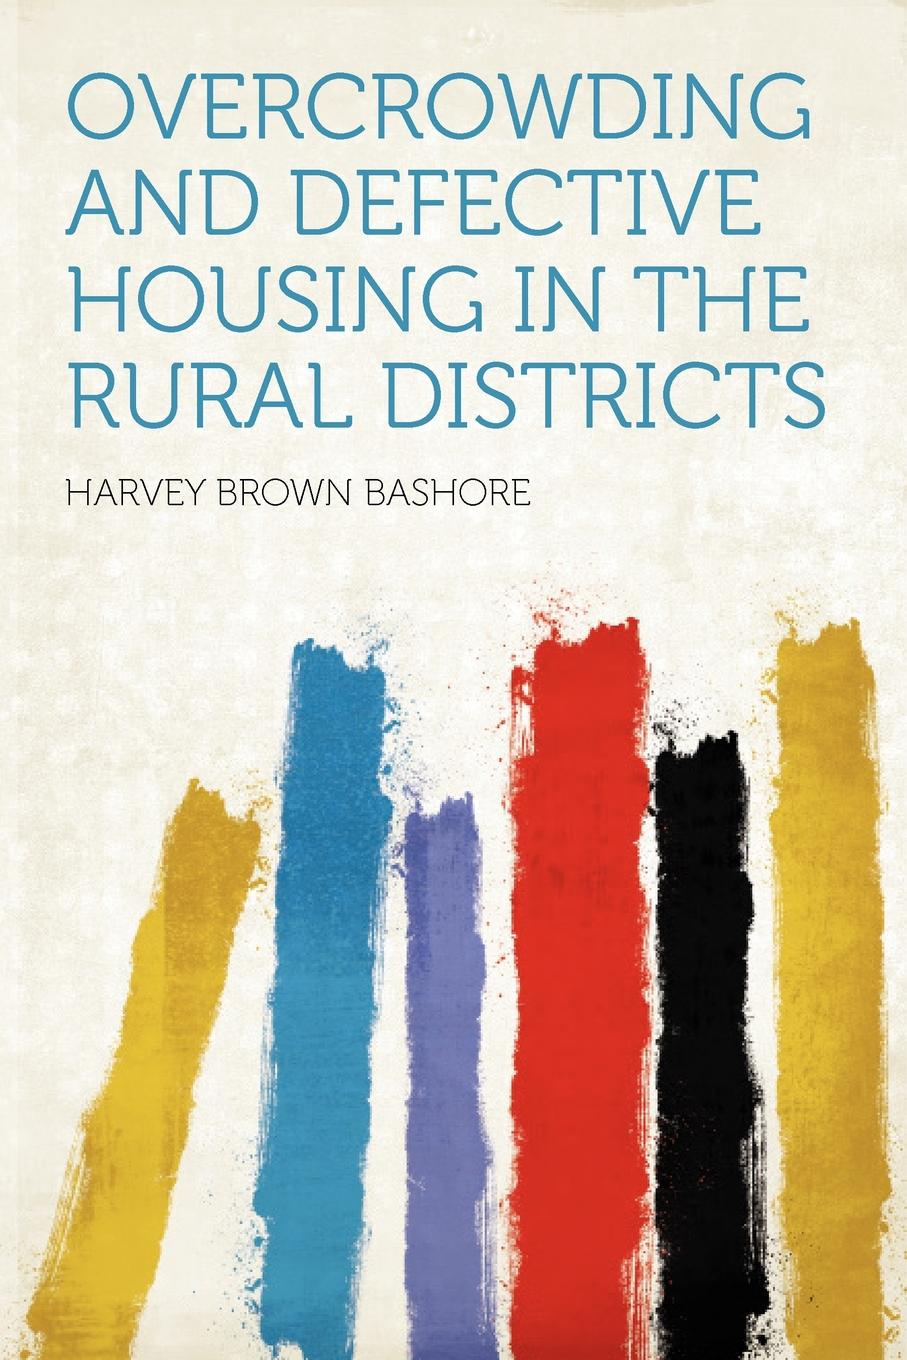 Overcrowding and Defective Housing in the Rural Districts